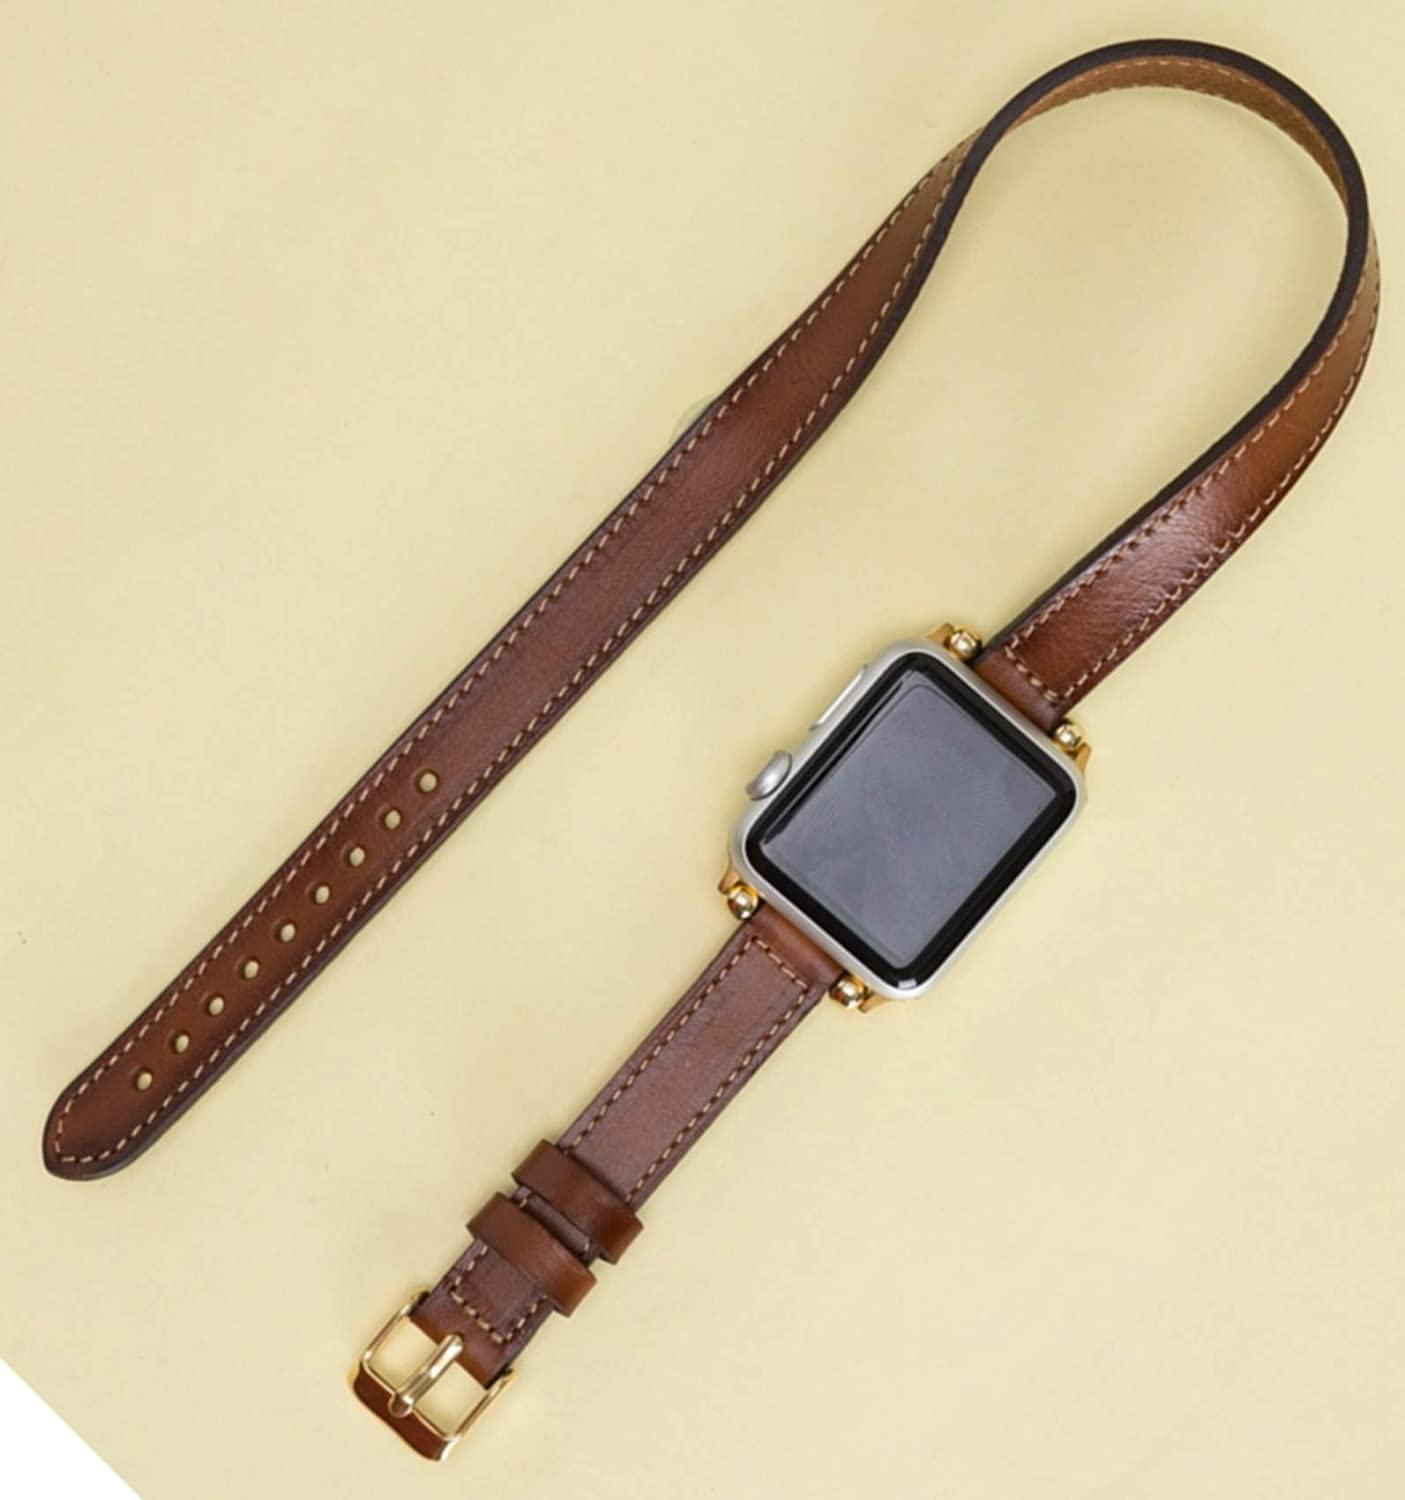 Slim Apple Watch Leather Band for Women Double Tour Thin iWatch Strap 38mm, 40mm, 42mm, 44mm Double Wrap Band Genuine Leather Handmade Engraving Available, READY to SHIP, FREE EXPEDITED SHIPPING